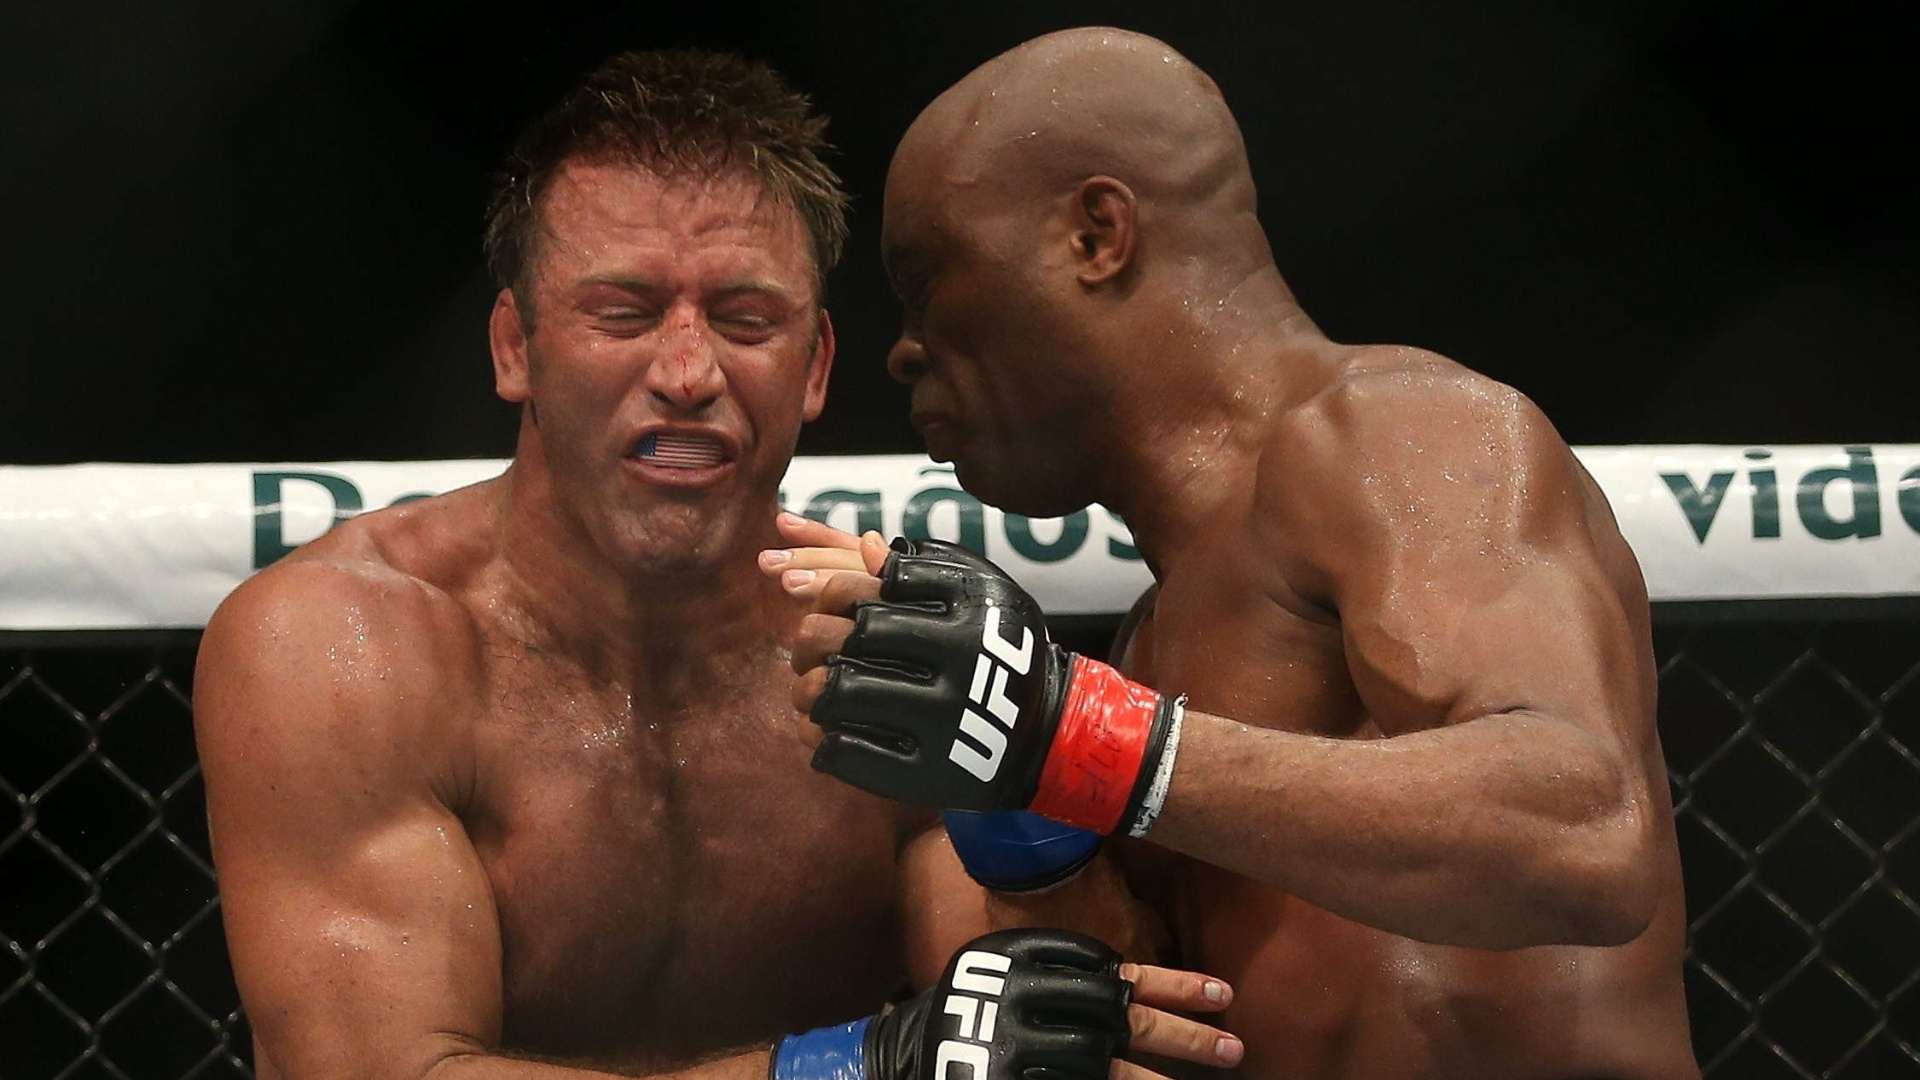 Anderson Silva tenta joelhada em Stephan Bonnar no UFC Rio 3